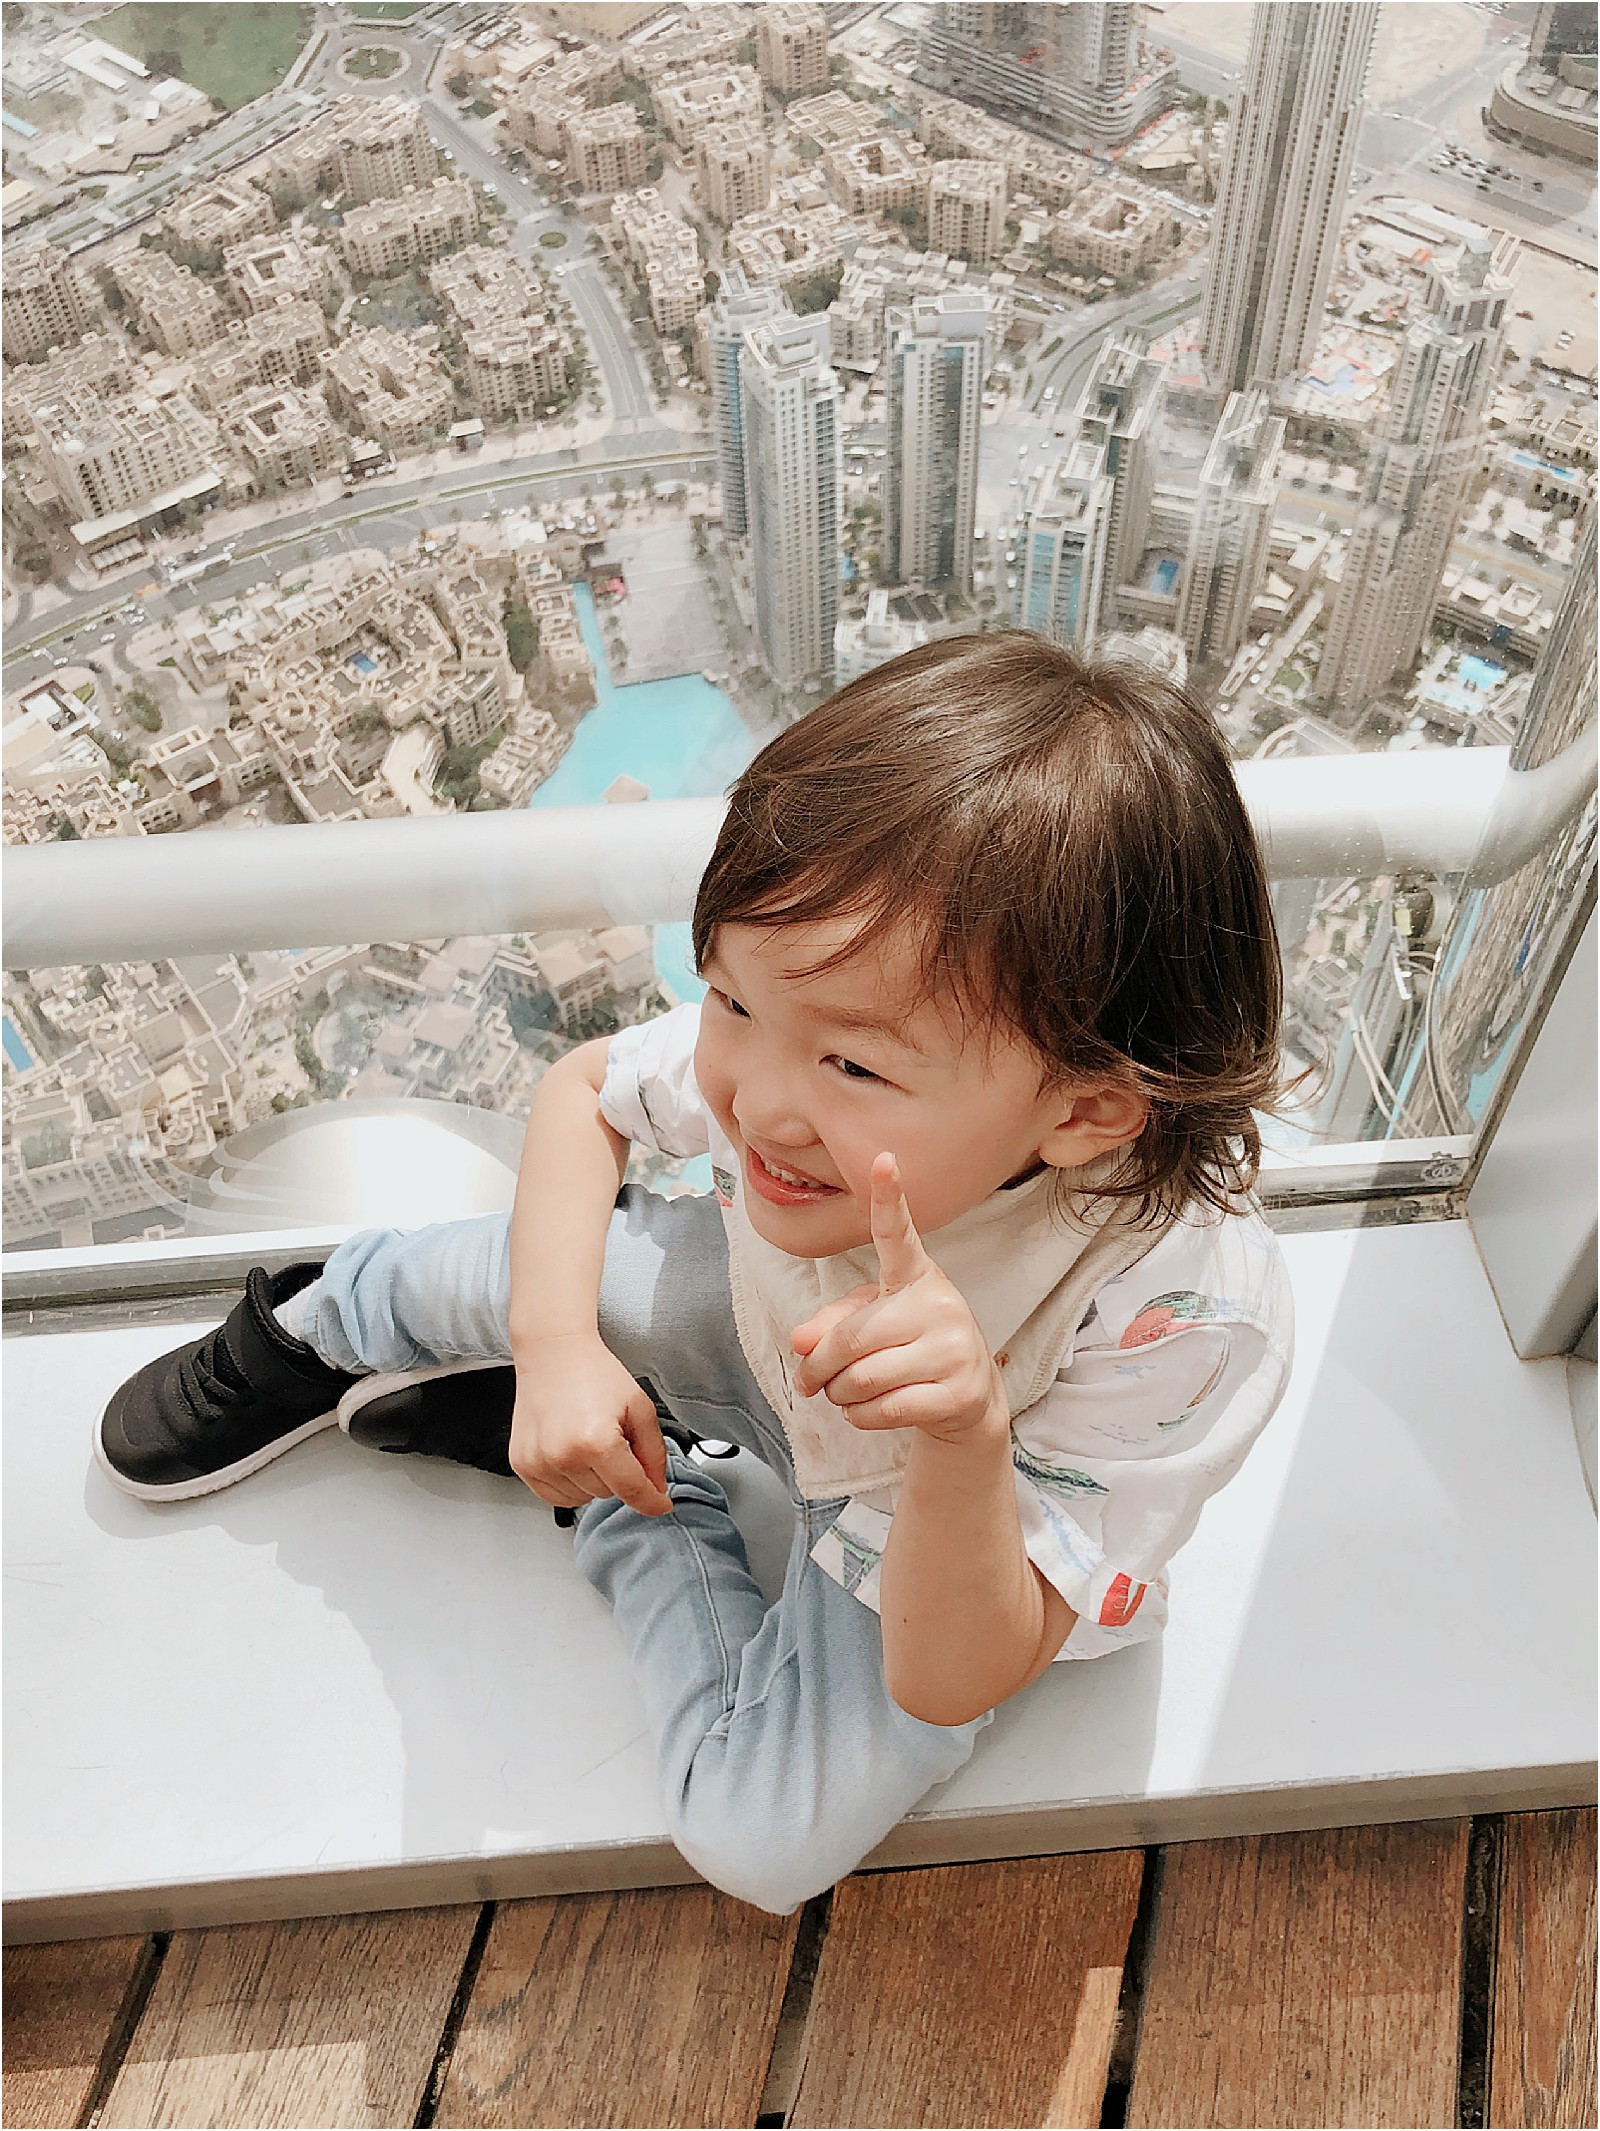 Dubai-family-travel-guide-burj-khalifa